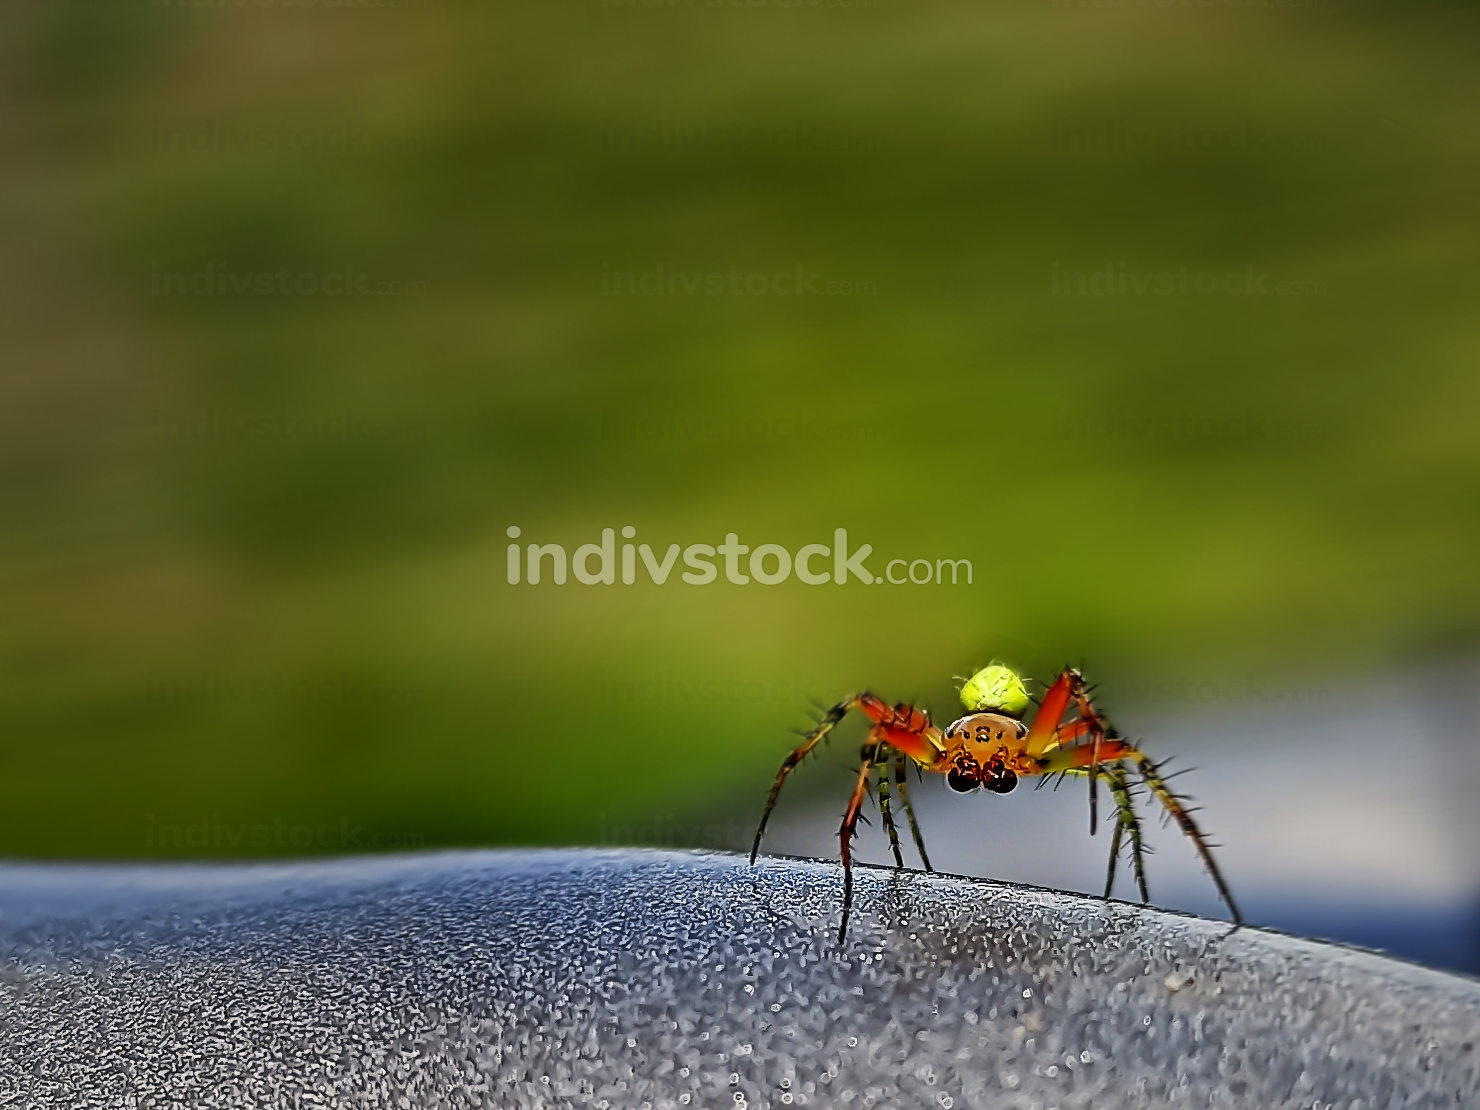 Spider with big eyes and yellow abdomen at steering wheel. Close